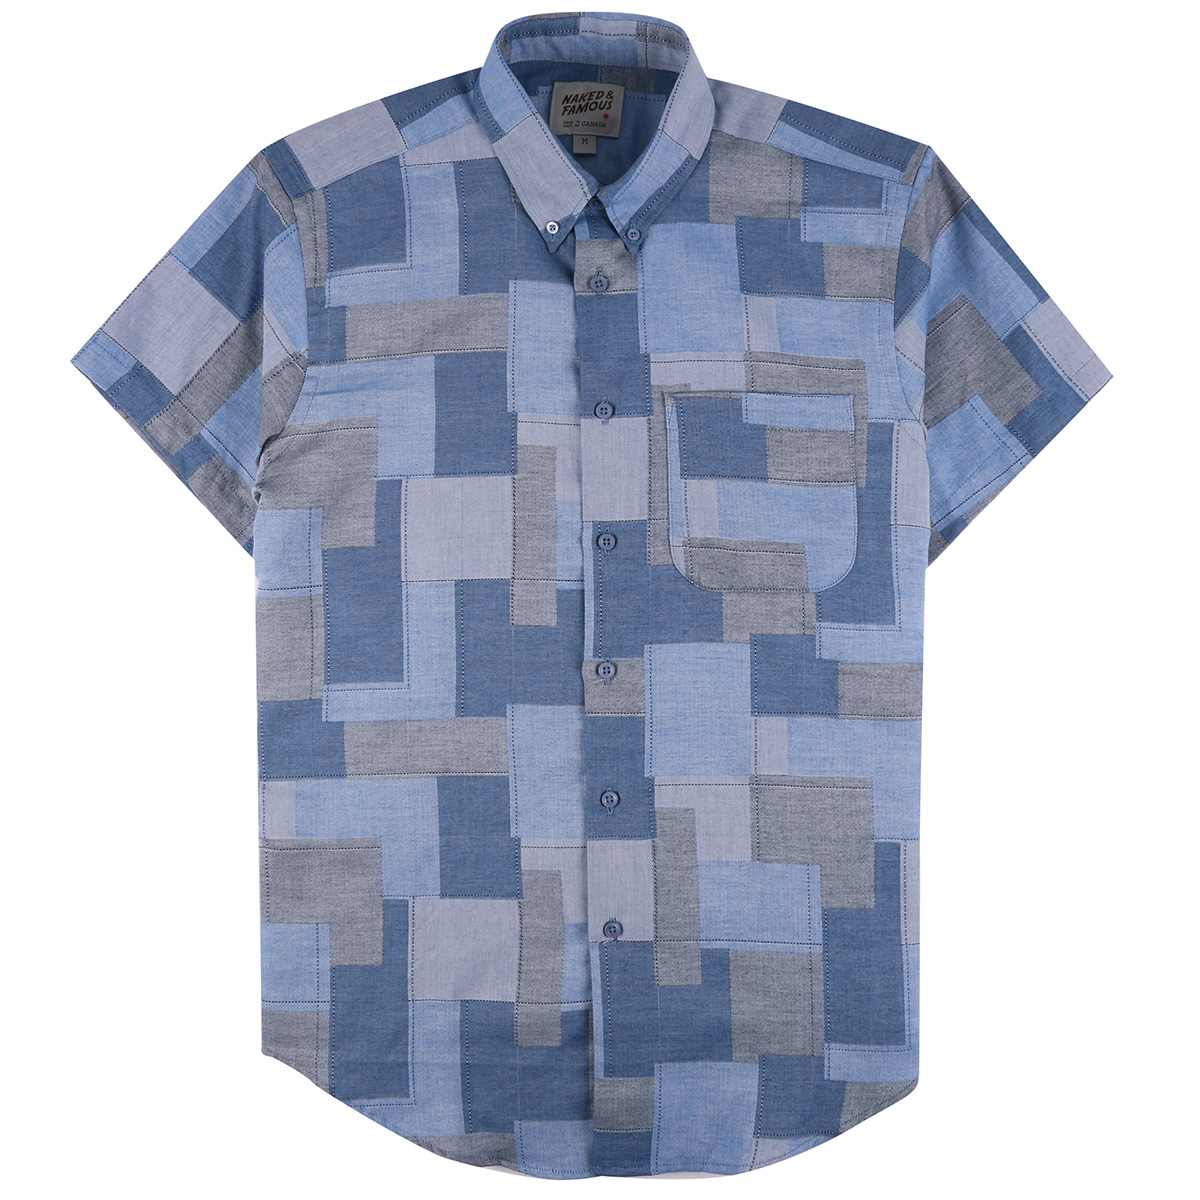 JACQUARD ABSTRACT BLOCKS - Short Sleeve Easy Shirt